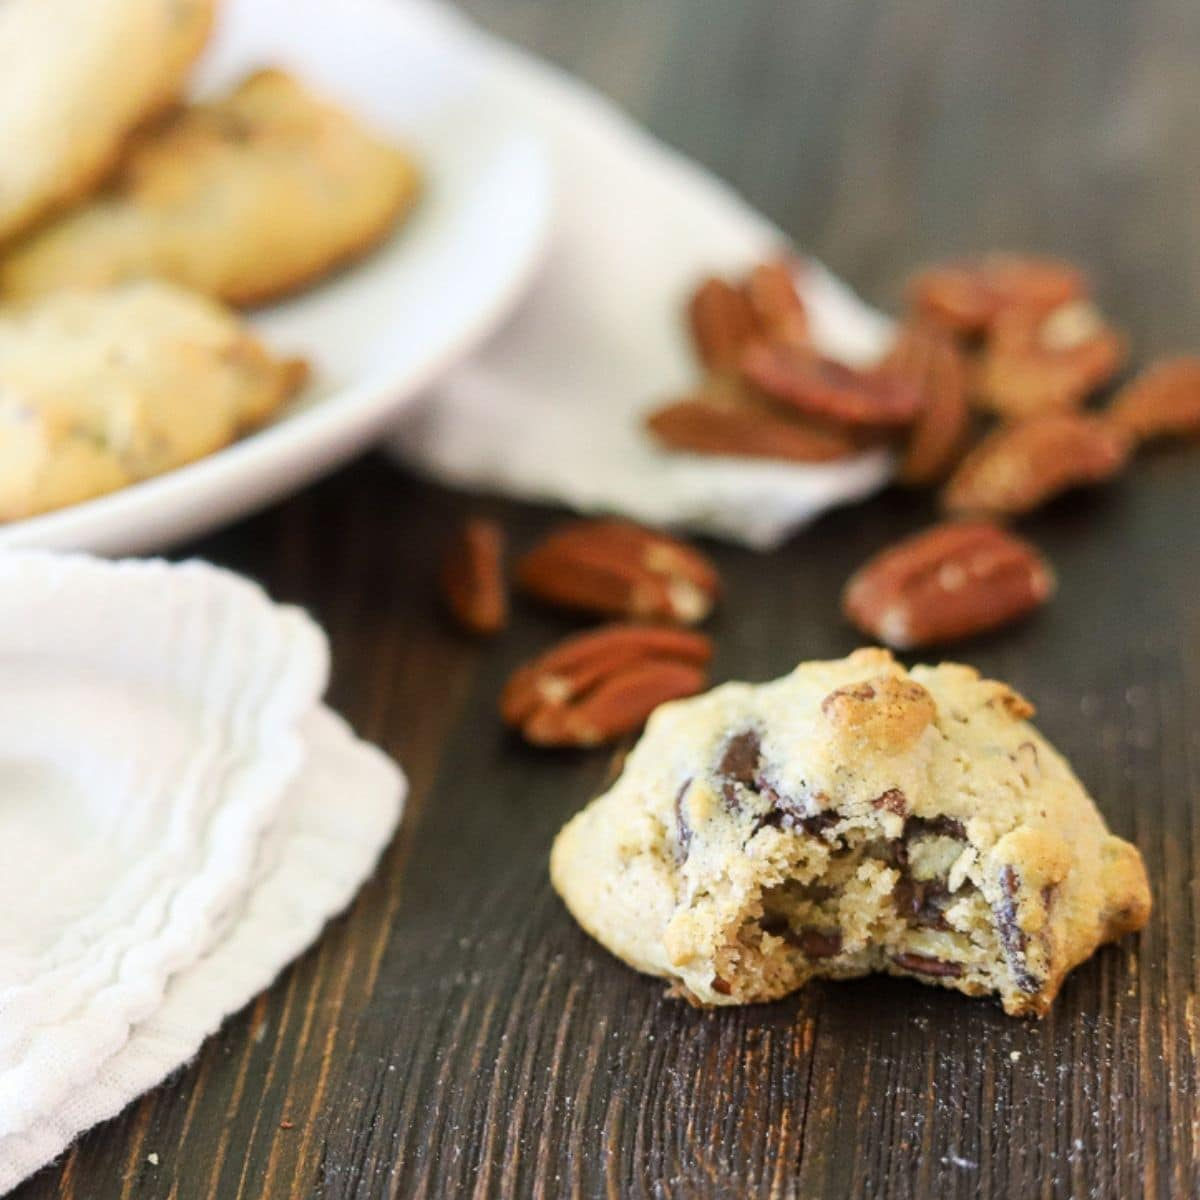 low carb derby cookie on a wooden board surrounded by pecan halves.